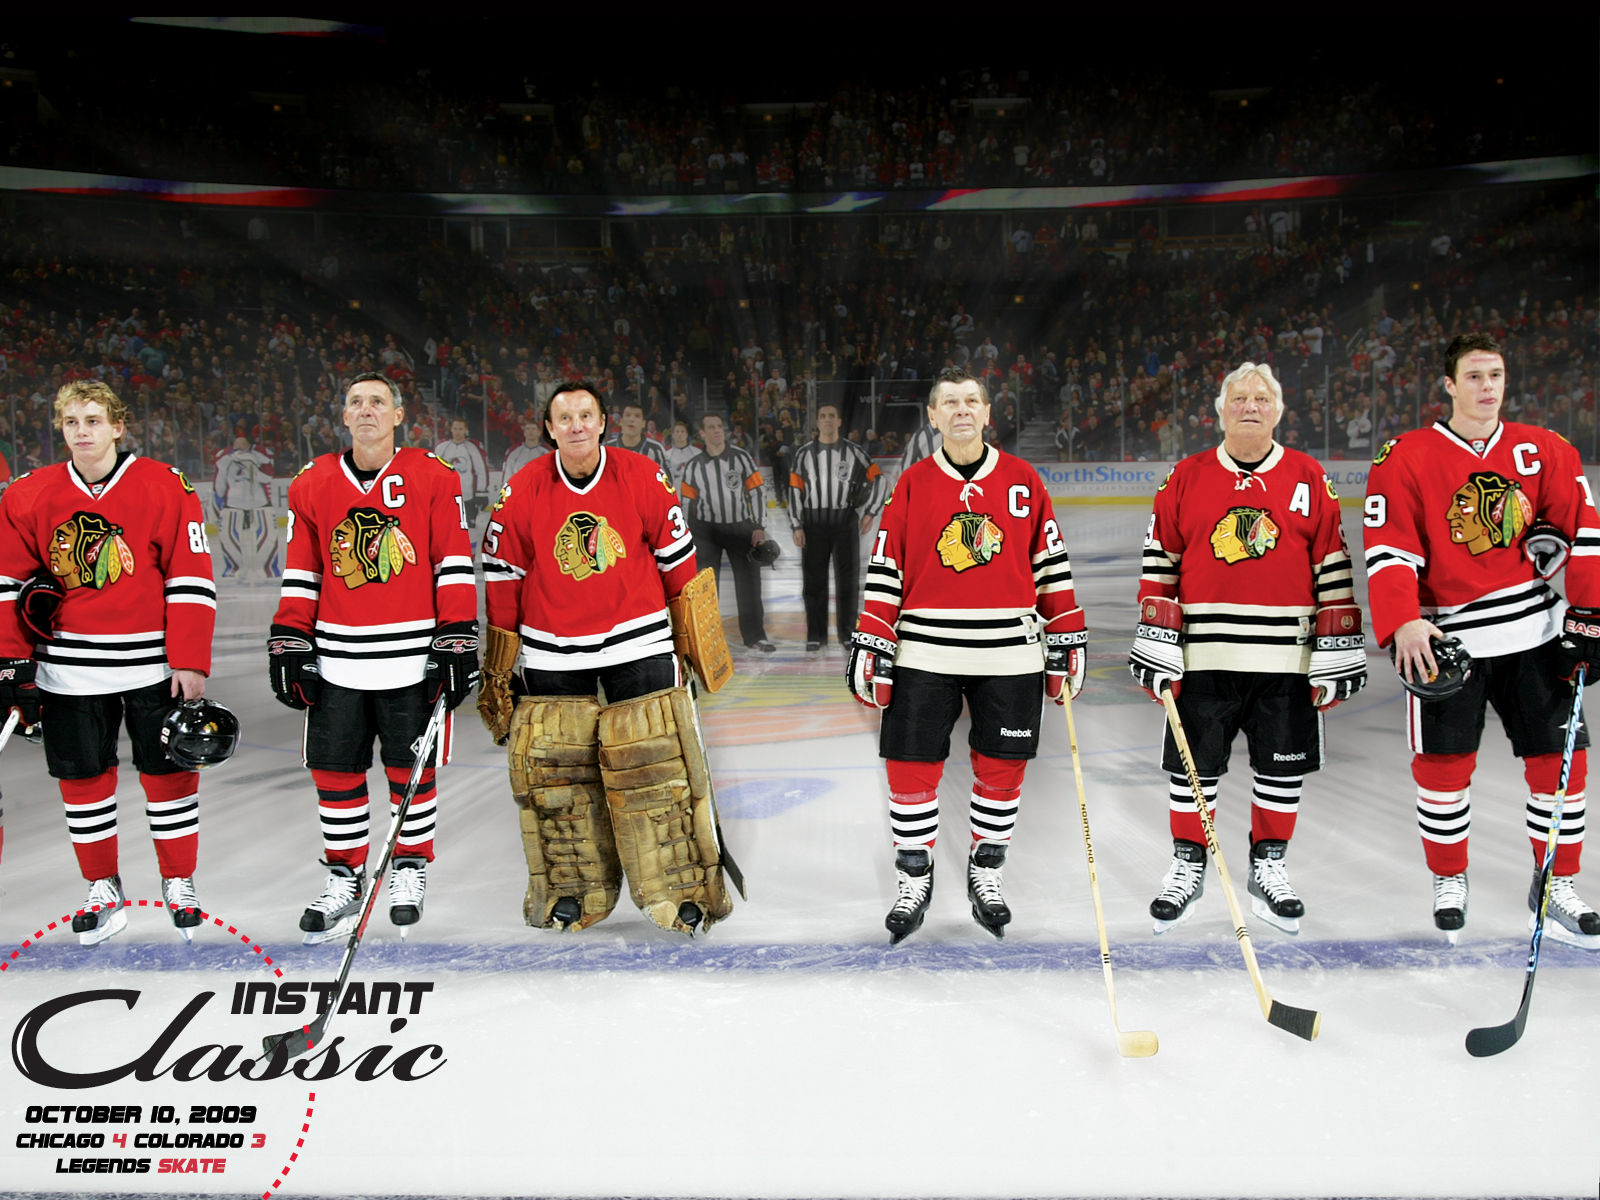 Hd sport wallpapers hockey - Nhl hockey wallpapers ...